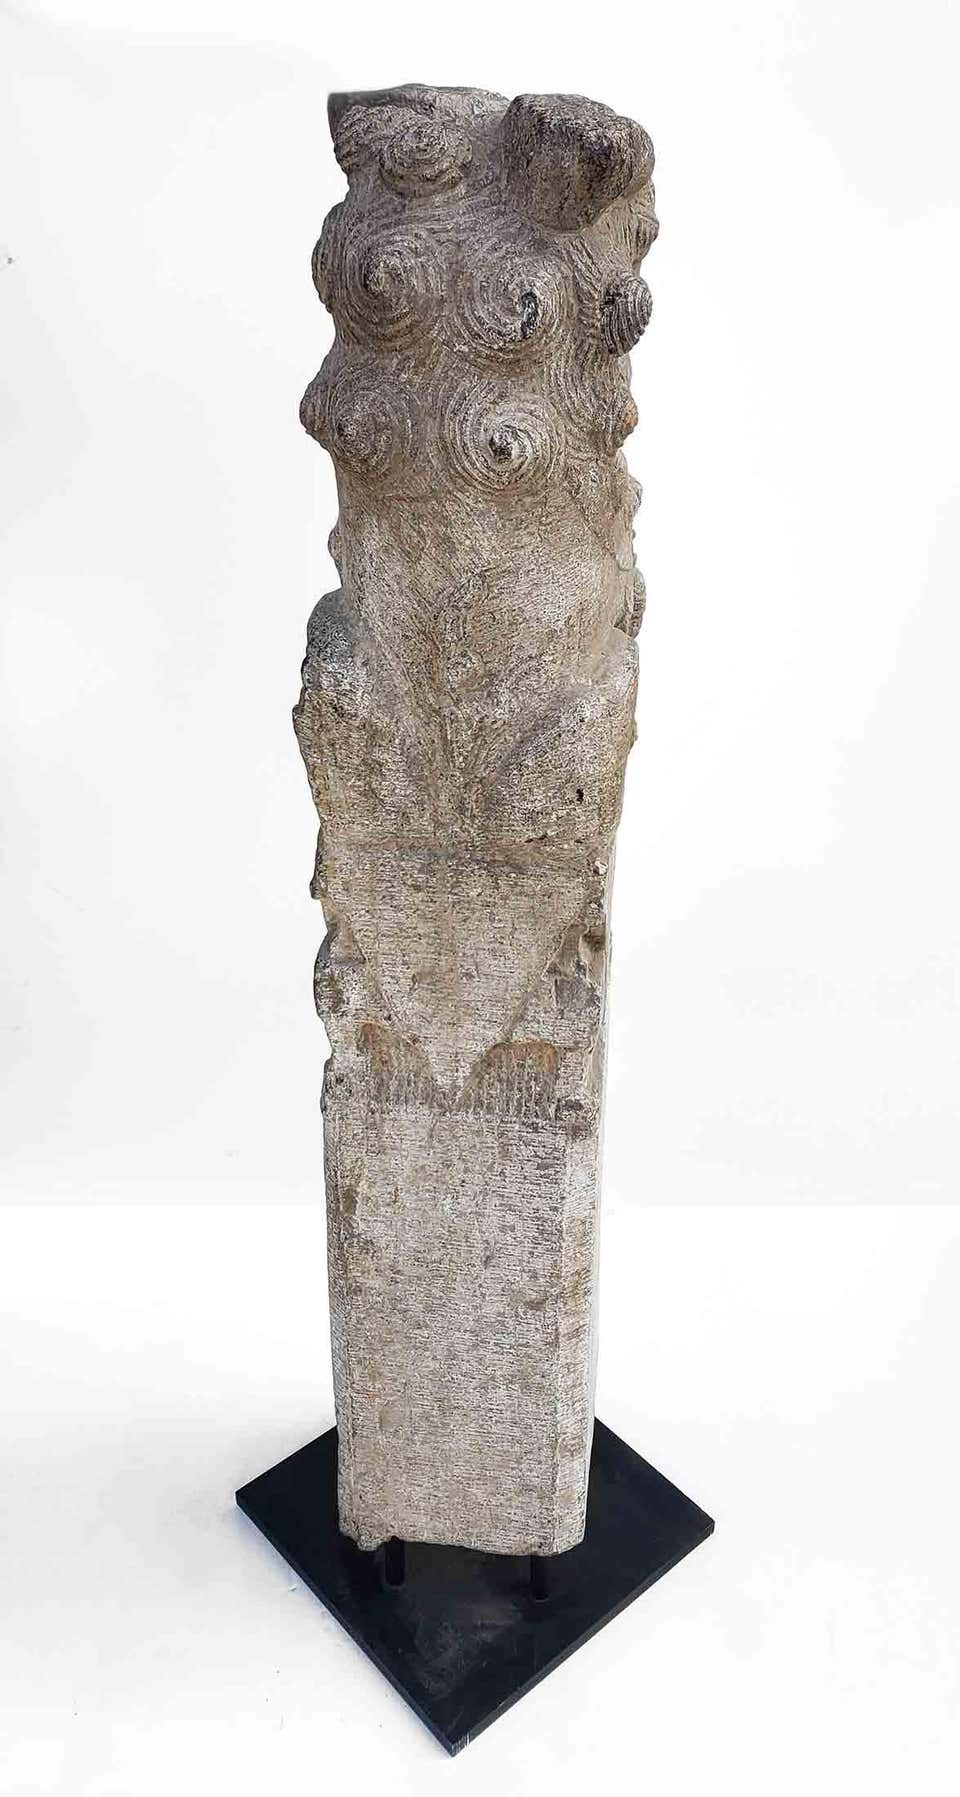 Chinese Foo Dog Hitching Post Sculpture in Solid Granite Early 20th Century